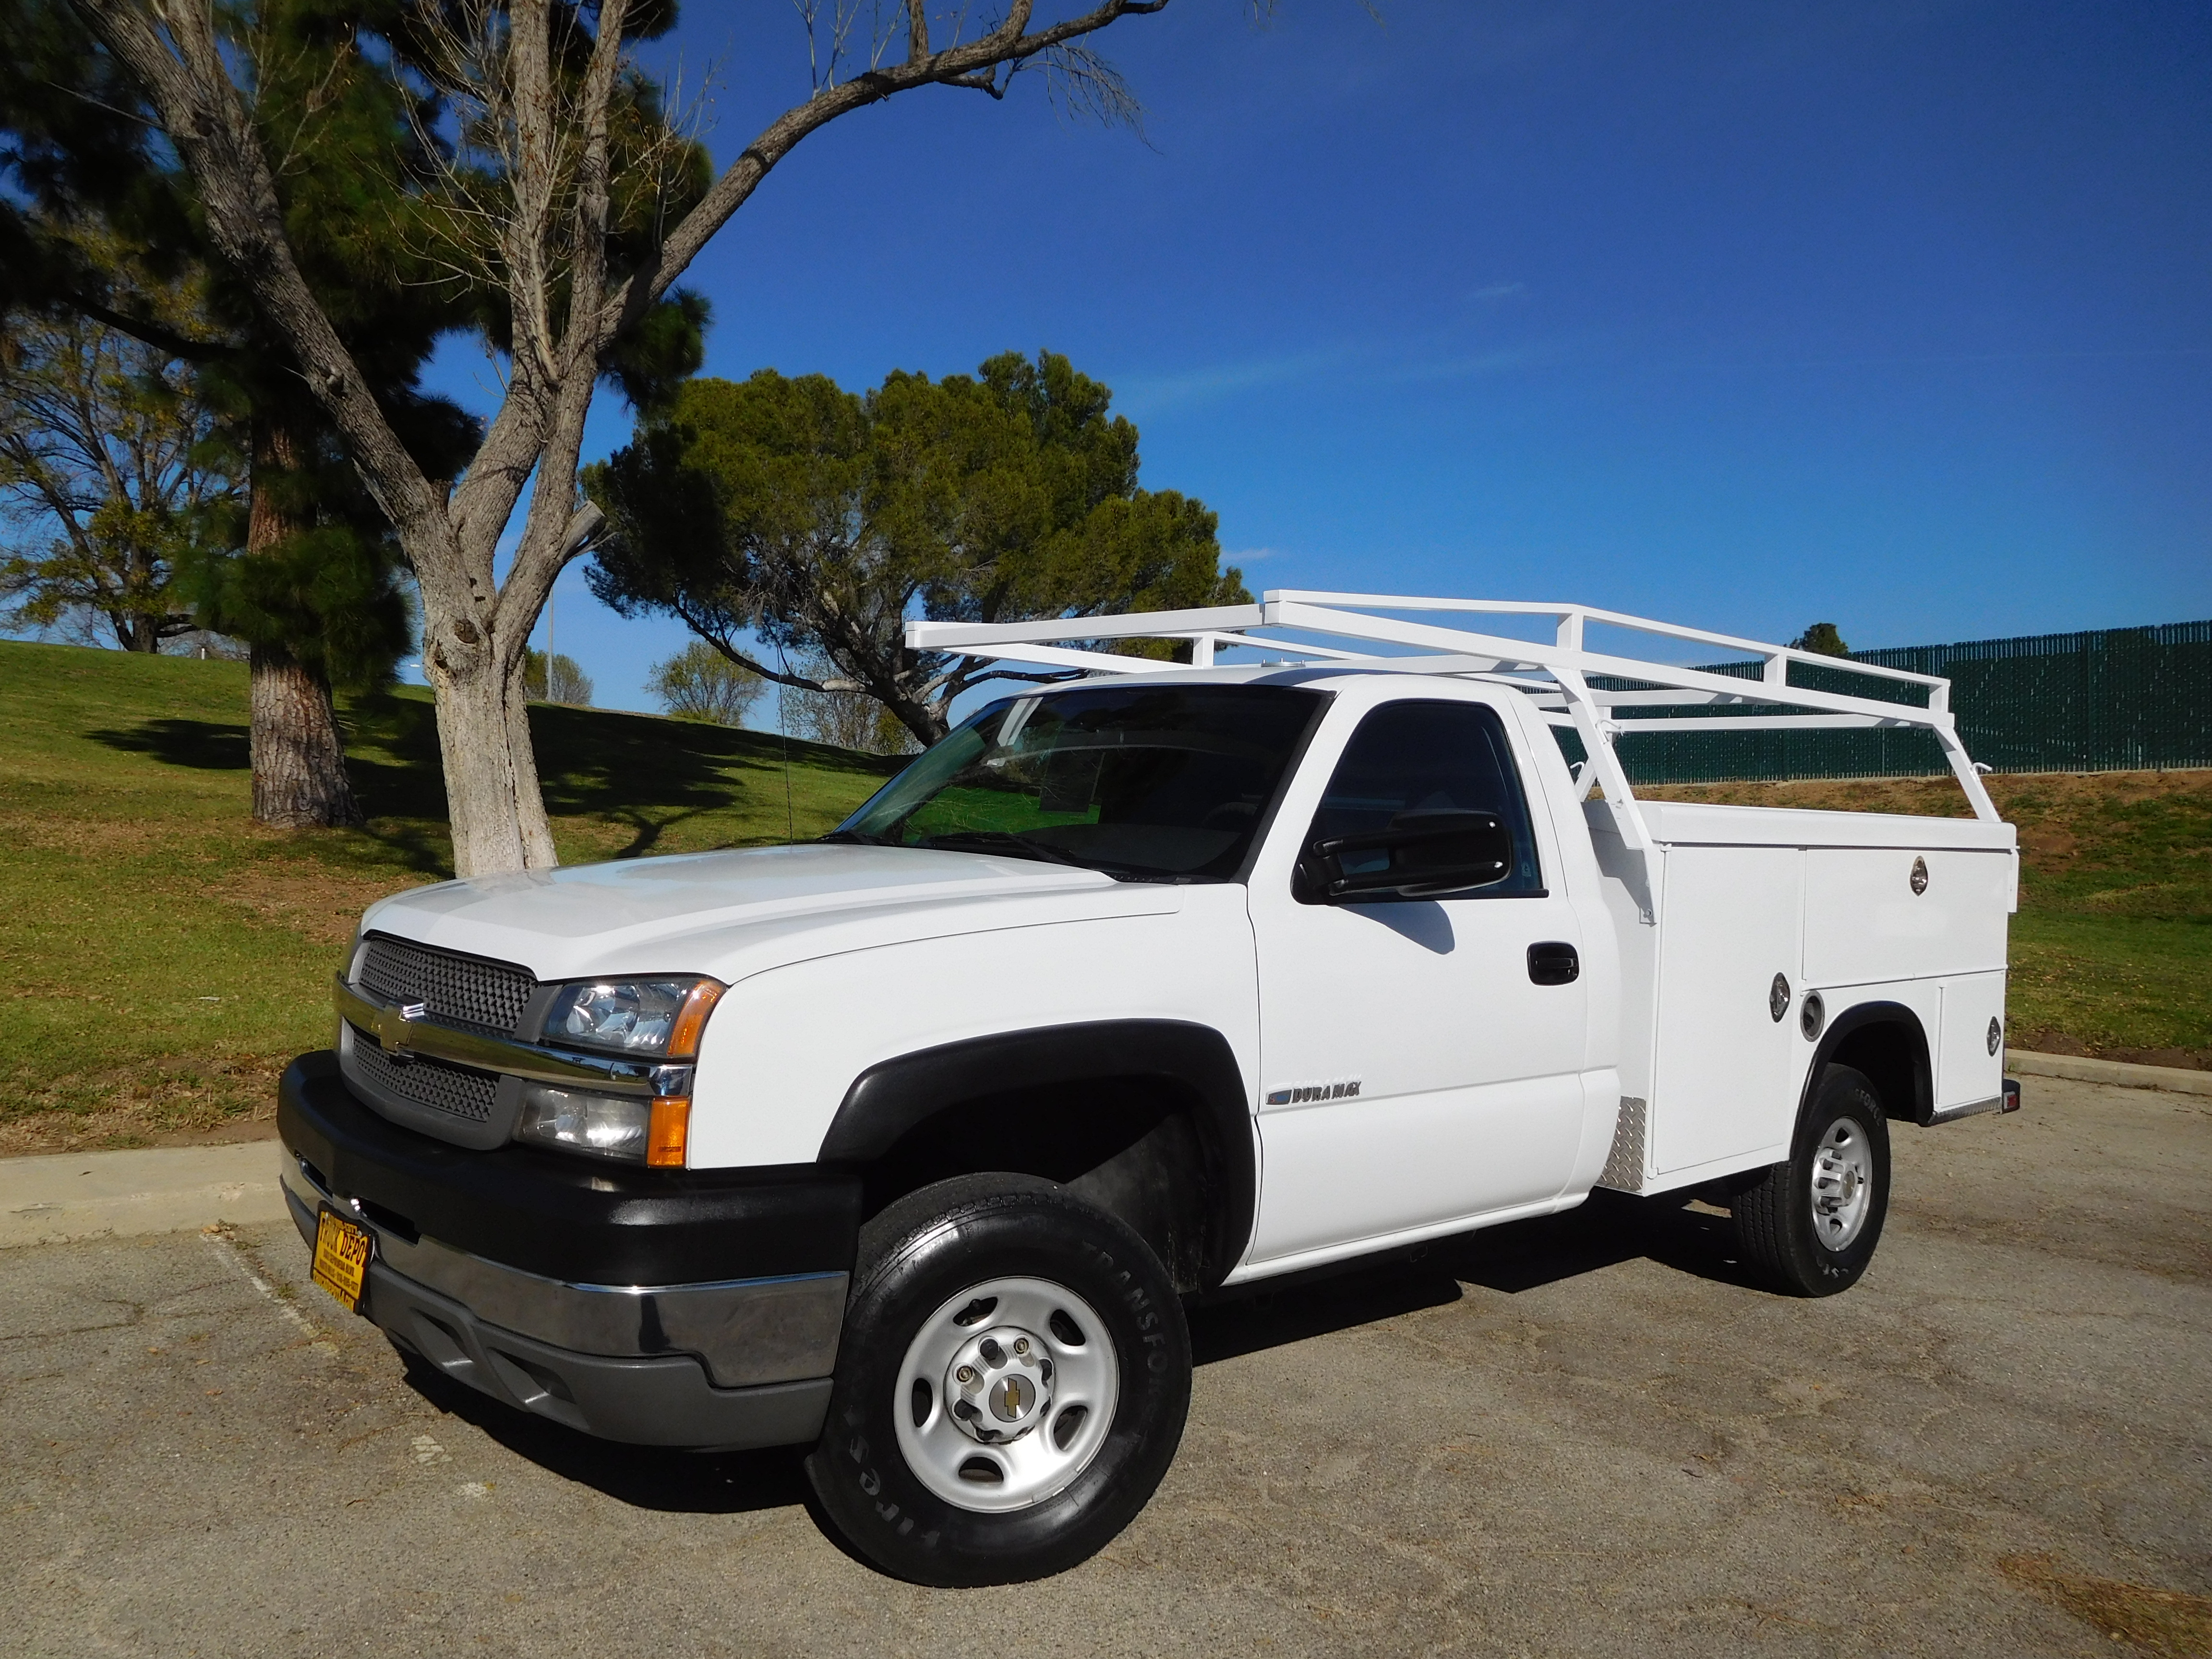 Truck Depot: Used Commercial Trucks For Sale in North Hills ...